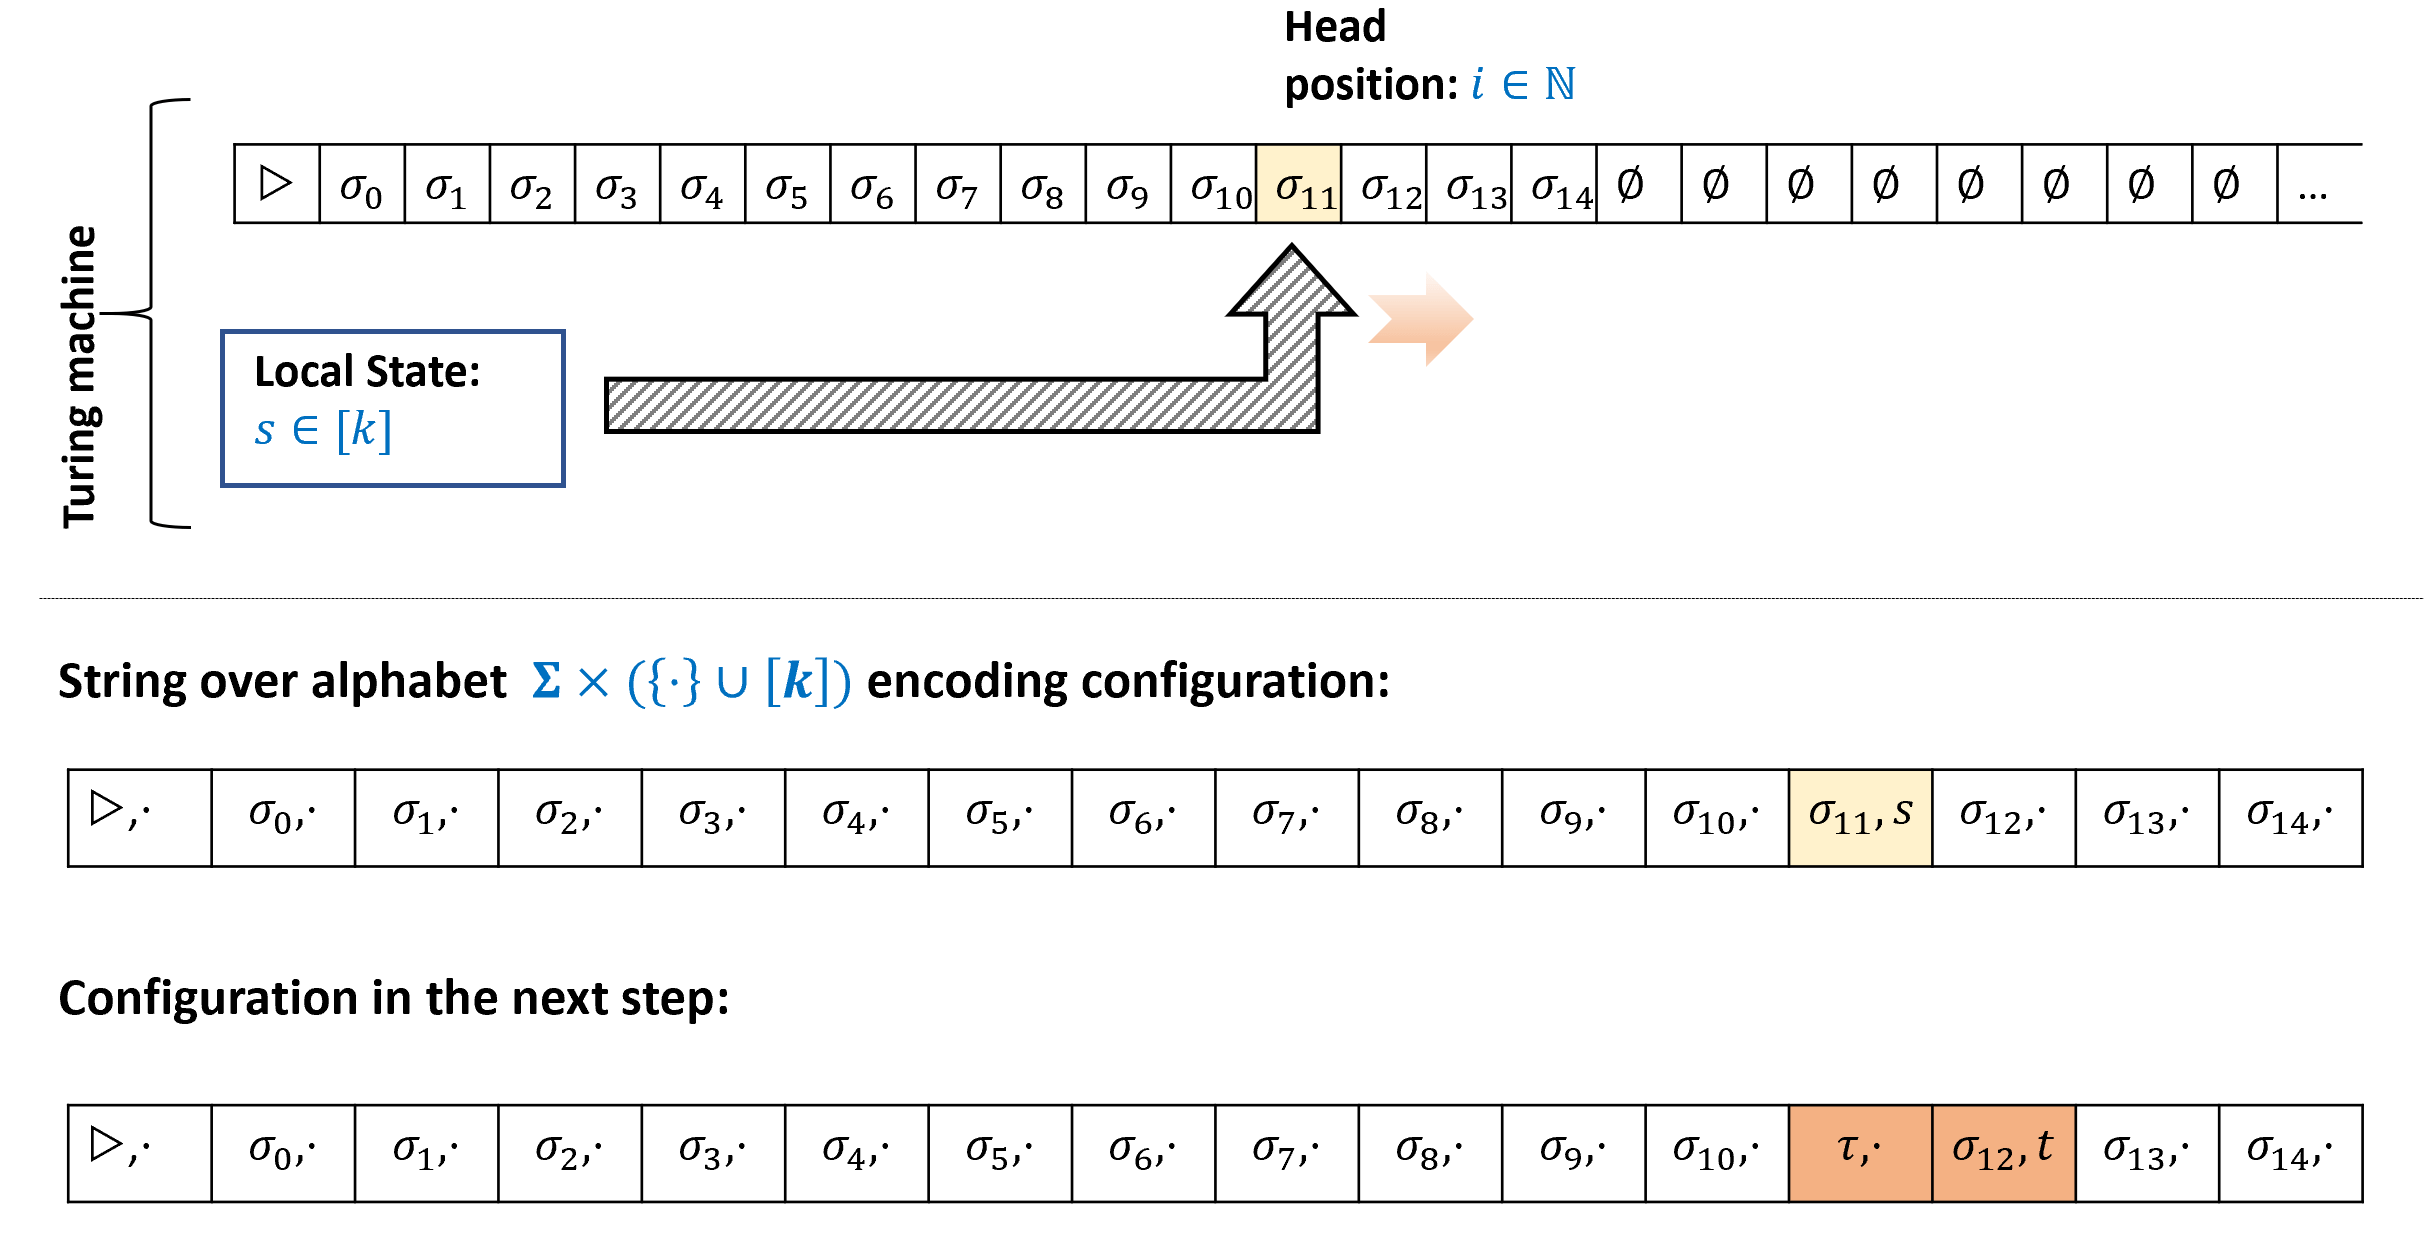 A configuration of a Turing machine M with alphabet \Sigma and state space [k] encodes the state of M at a particular step in its execution as a string \alpha over the alphabet \overline{\Sigma} = \Sigma \times (\{\cdot \} \times [k]). The string is of length t where t is such that M's tape contains \varnothing in all positions t and larger and M's head is in a position smaller than t. If M's head is in the i-th position, then for j \neq i, \alpha_j encodes the value of the j-th cell of M's tape, while \alpha_i encodes both this value as well as the current state of M. If the machine writes the value \tau, changes state to t, and moves right, then in the next configuration will contain at position i the value (\tau,\cdot) and at position i+1 the value (\alpha_{i+1},t).